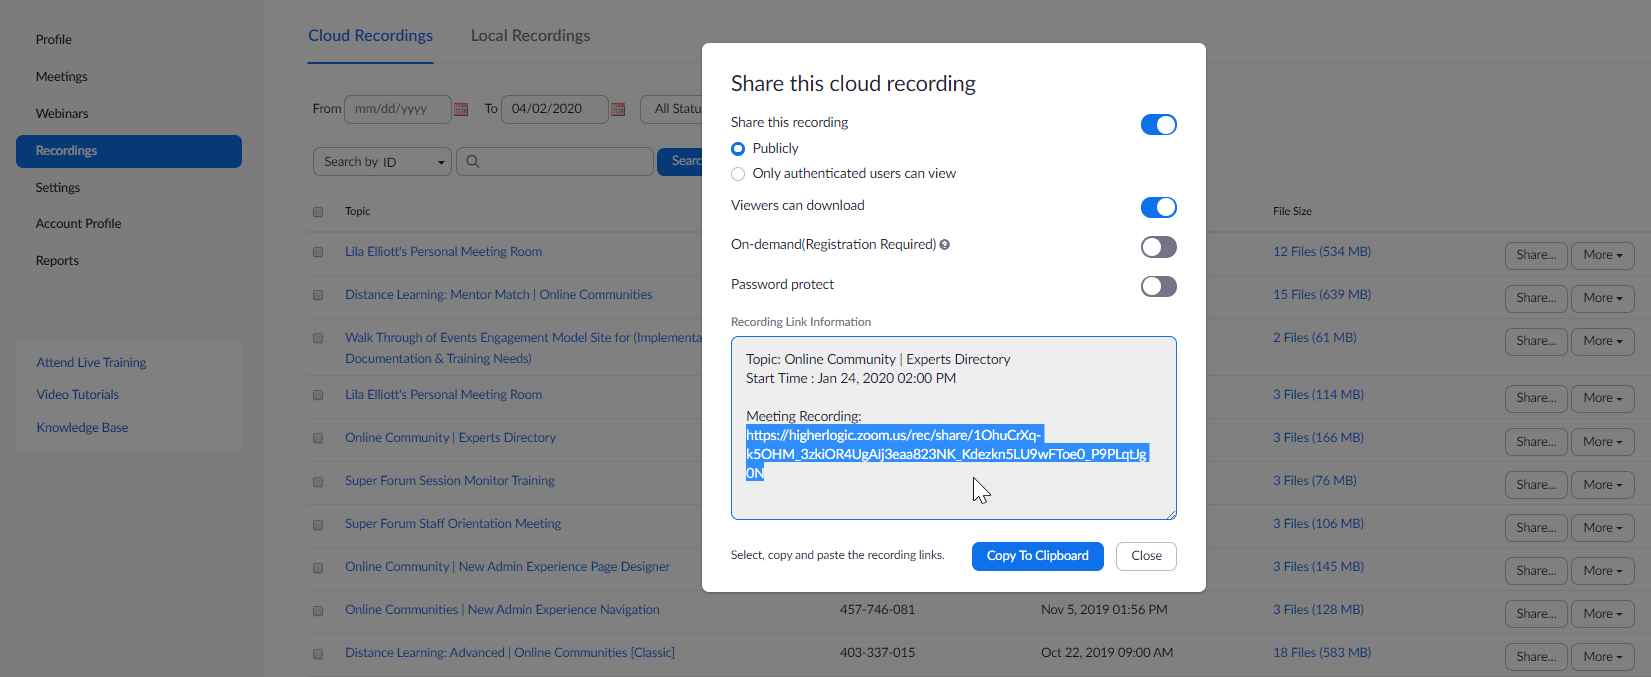 cloud_recordings-recordings-share-dialog.png